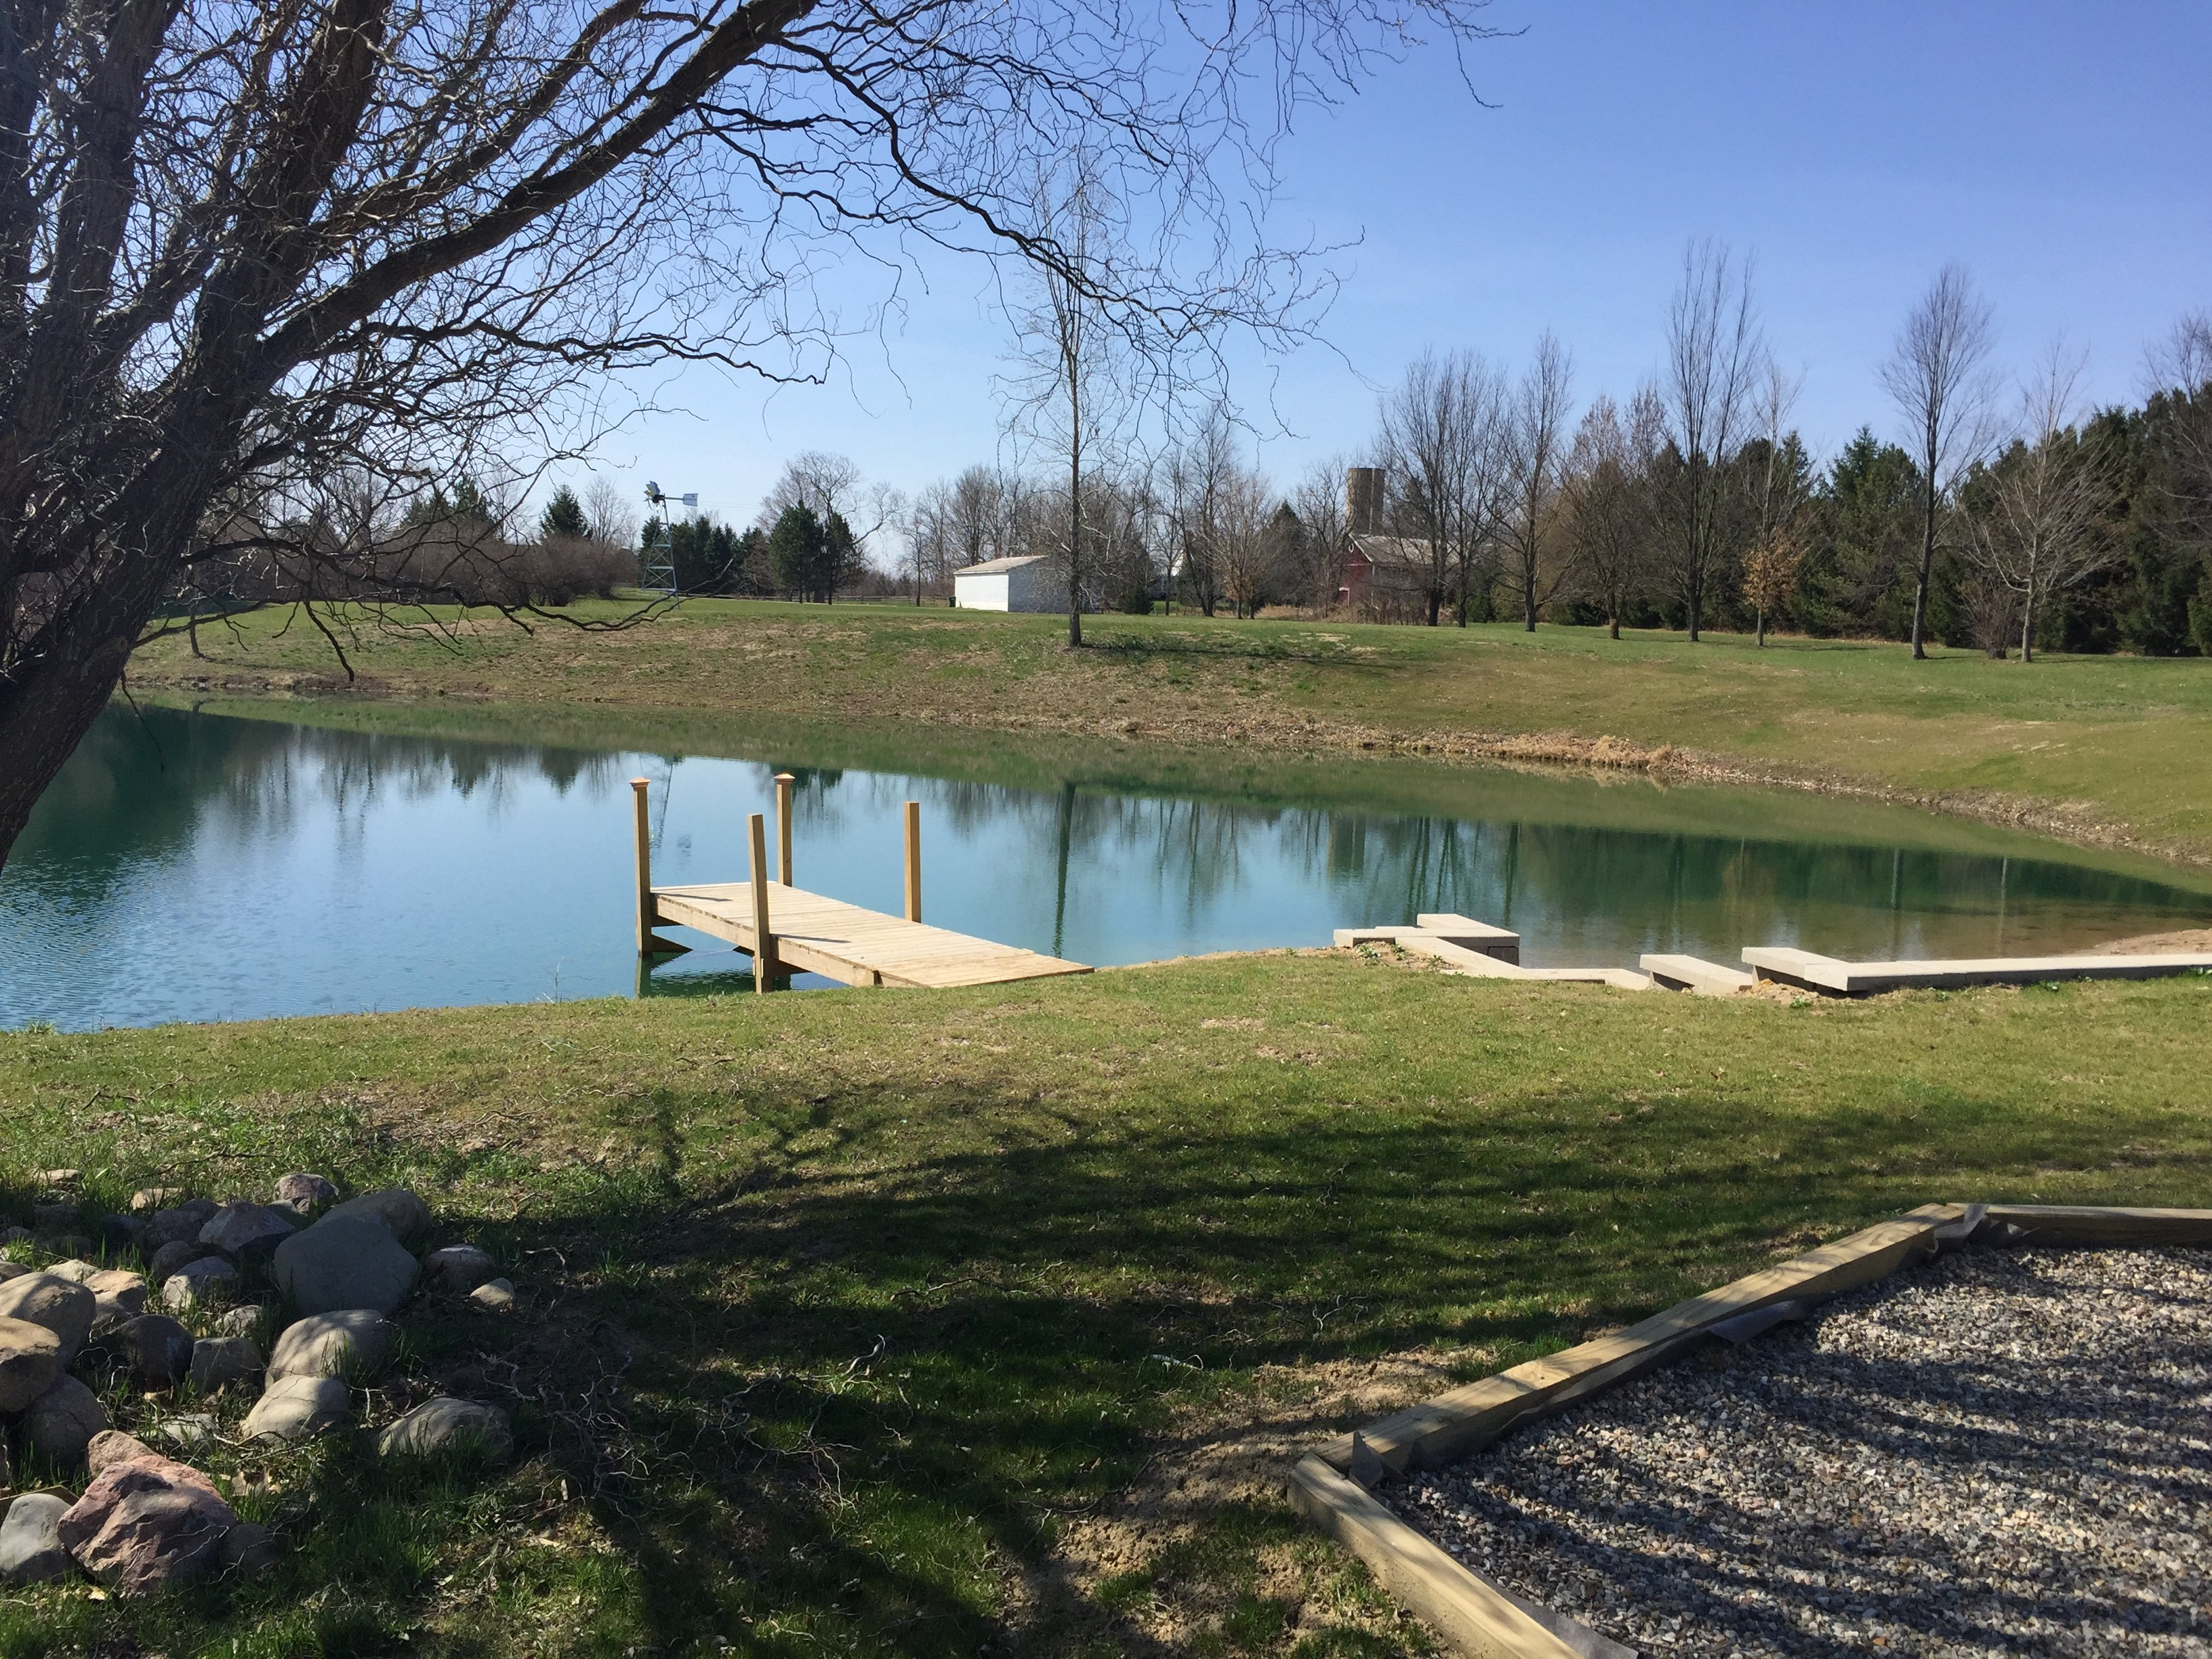 Howell michigan pond problems repaired windmill beach for Pond problems